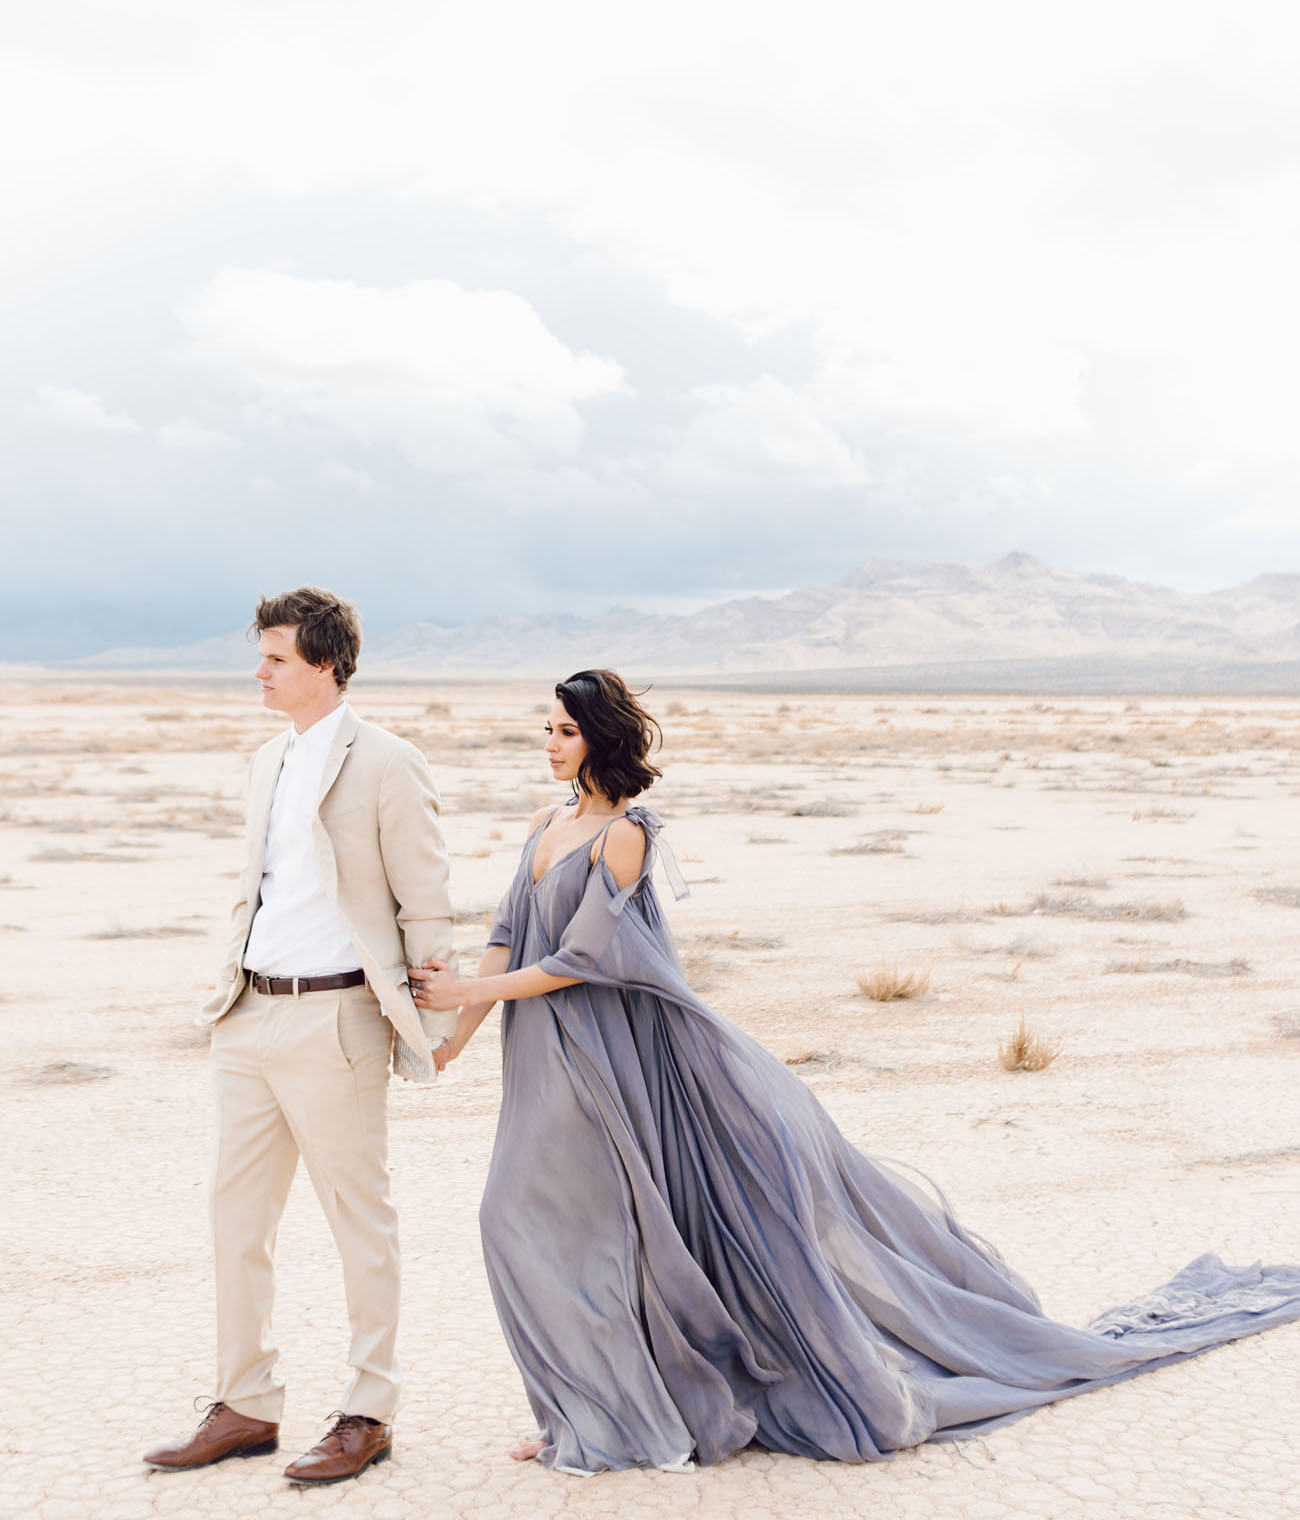 A Sweeping Periwinkle Gown Steals The Show In This Desert Elopement